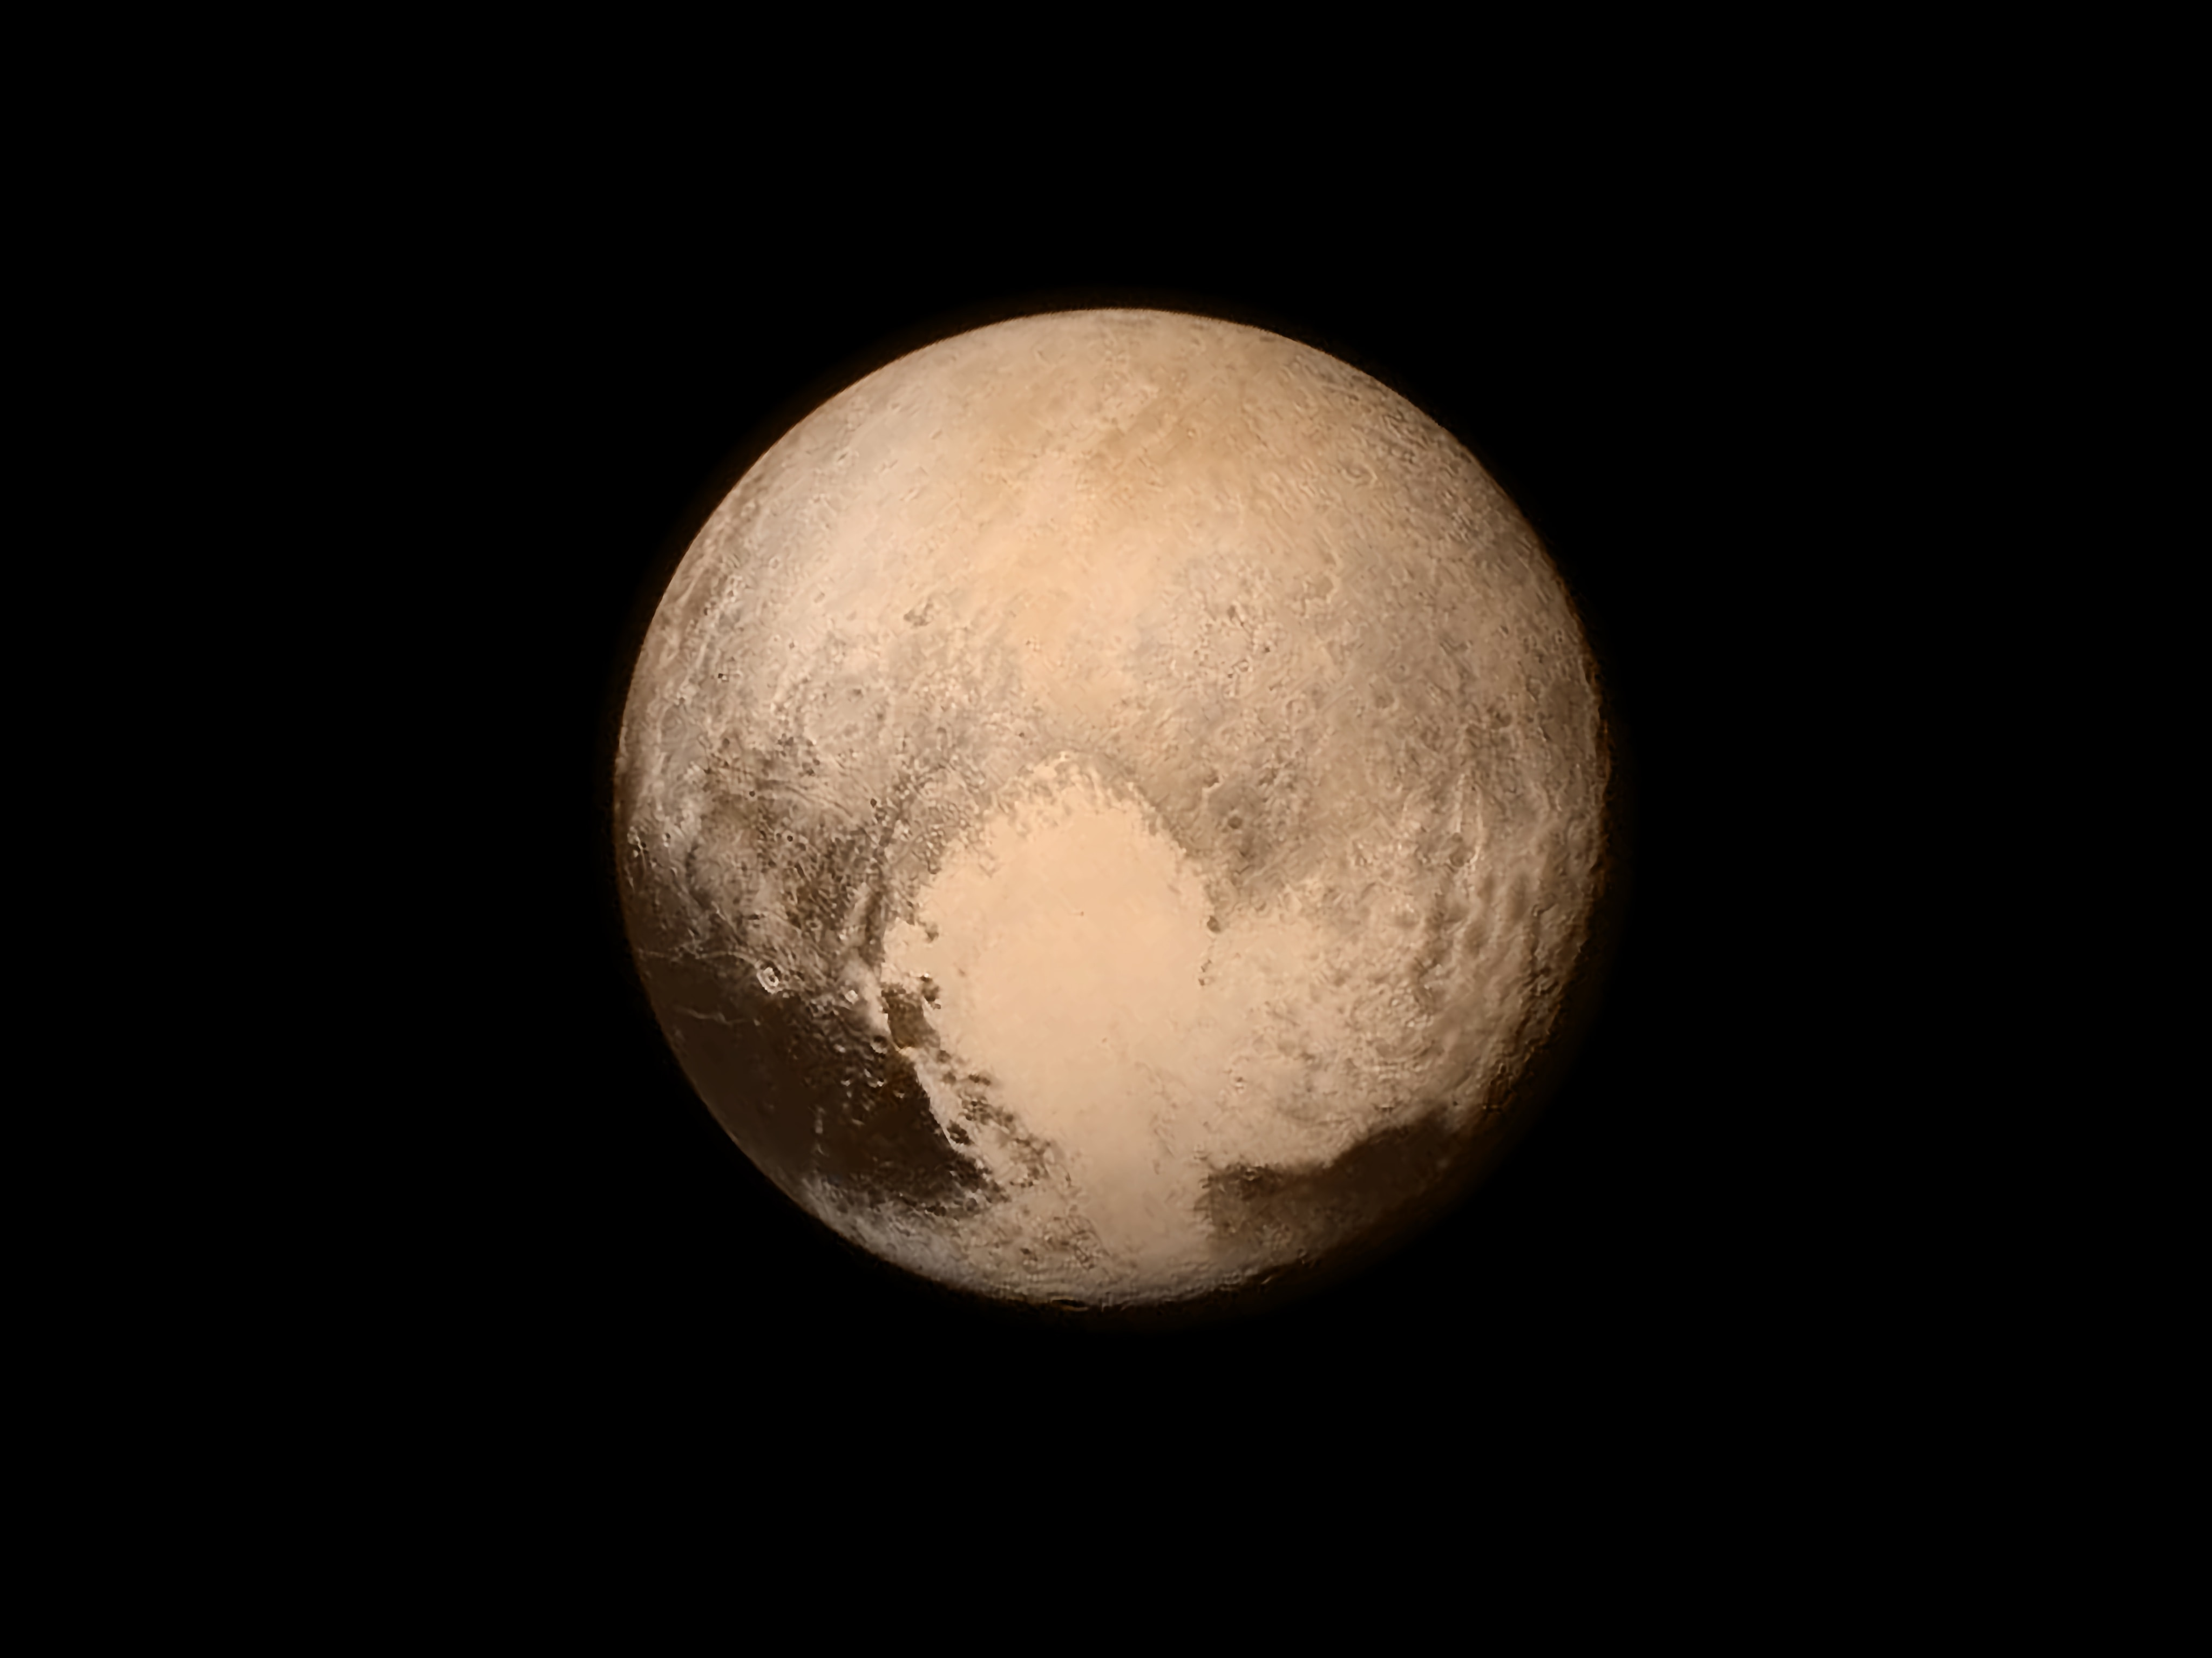 Pluto as seen from the New Horizons spacecraft in 2015 at a distance of 476,000 miles